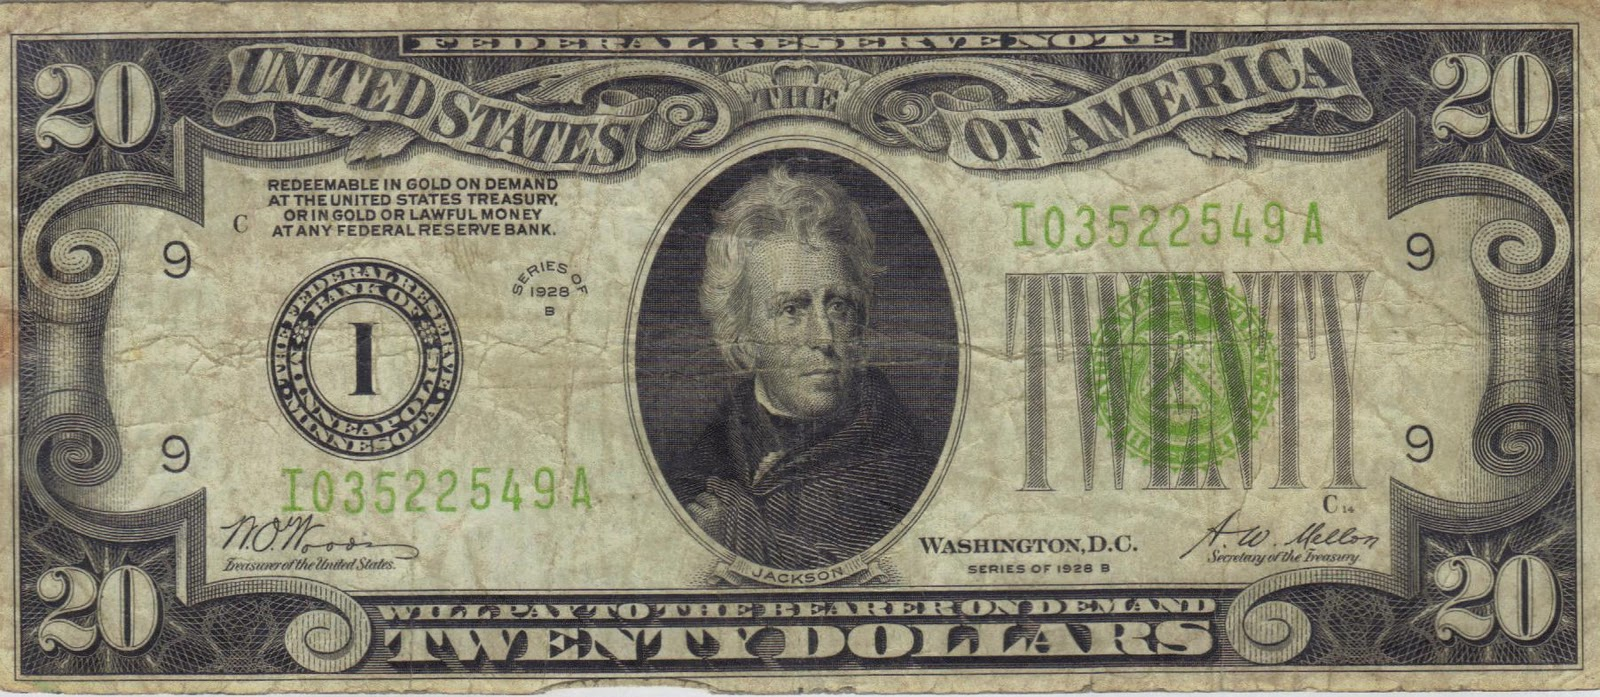 News Man Jfk Was Killed For Printing These United States Notes